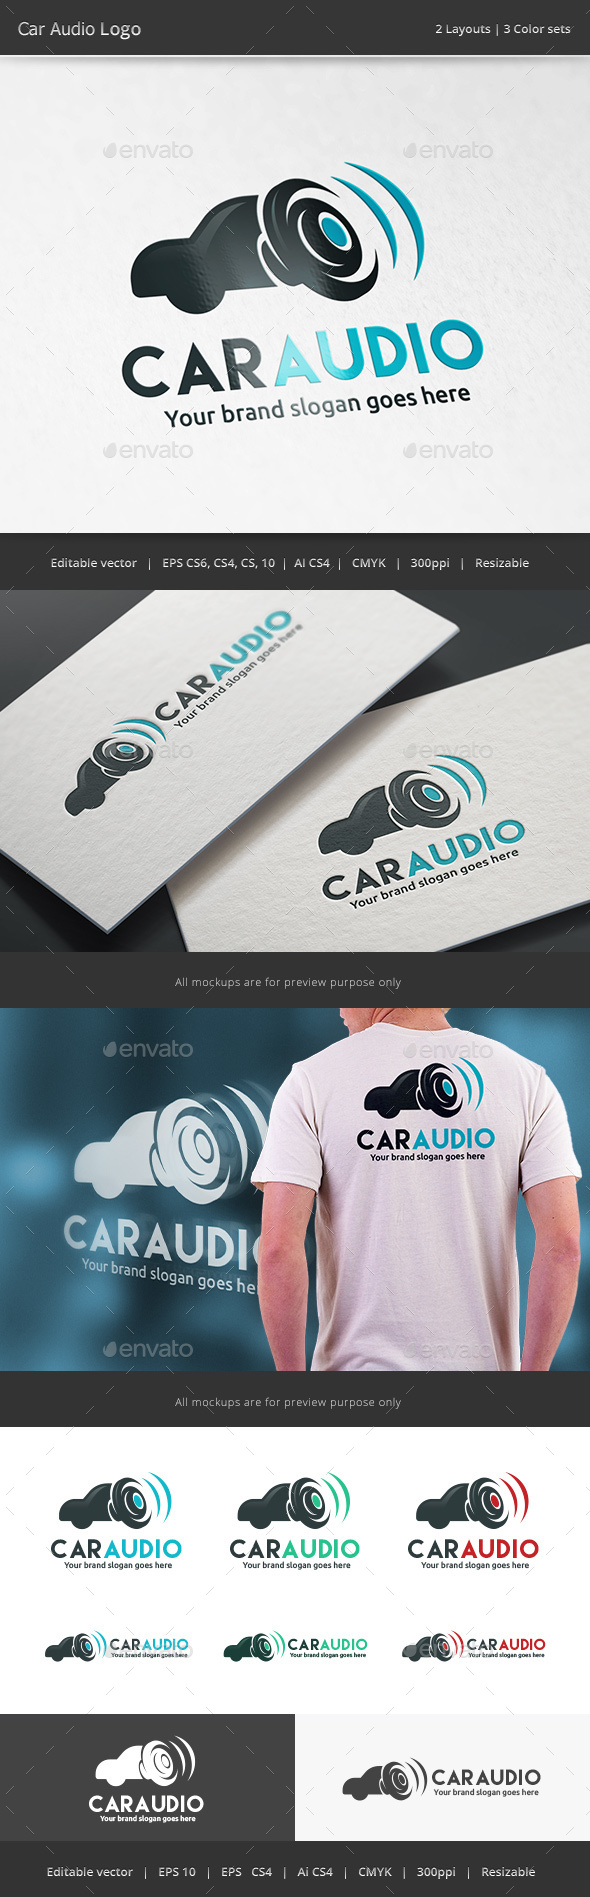 Car Audio Logo